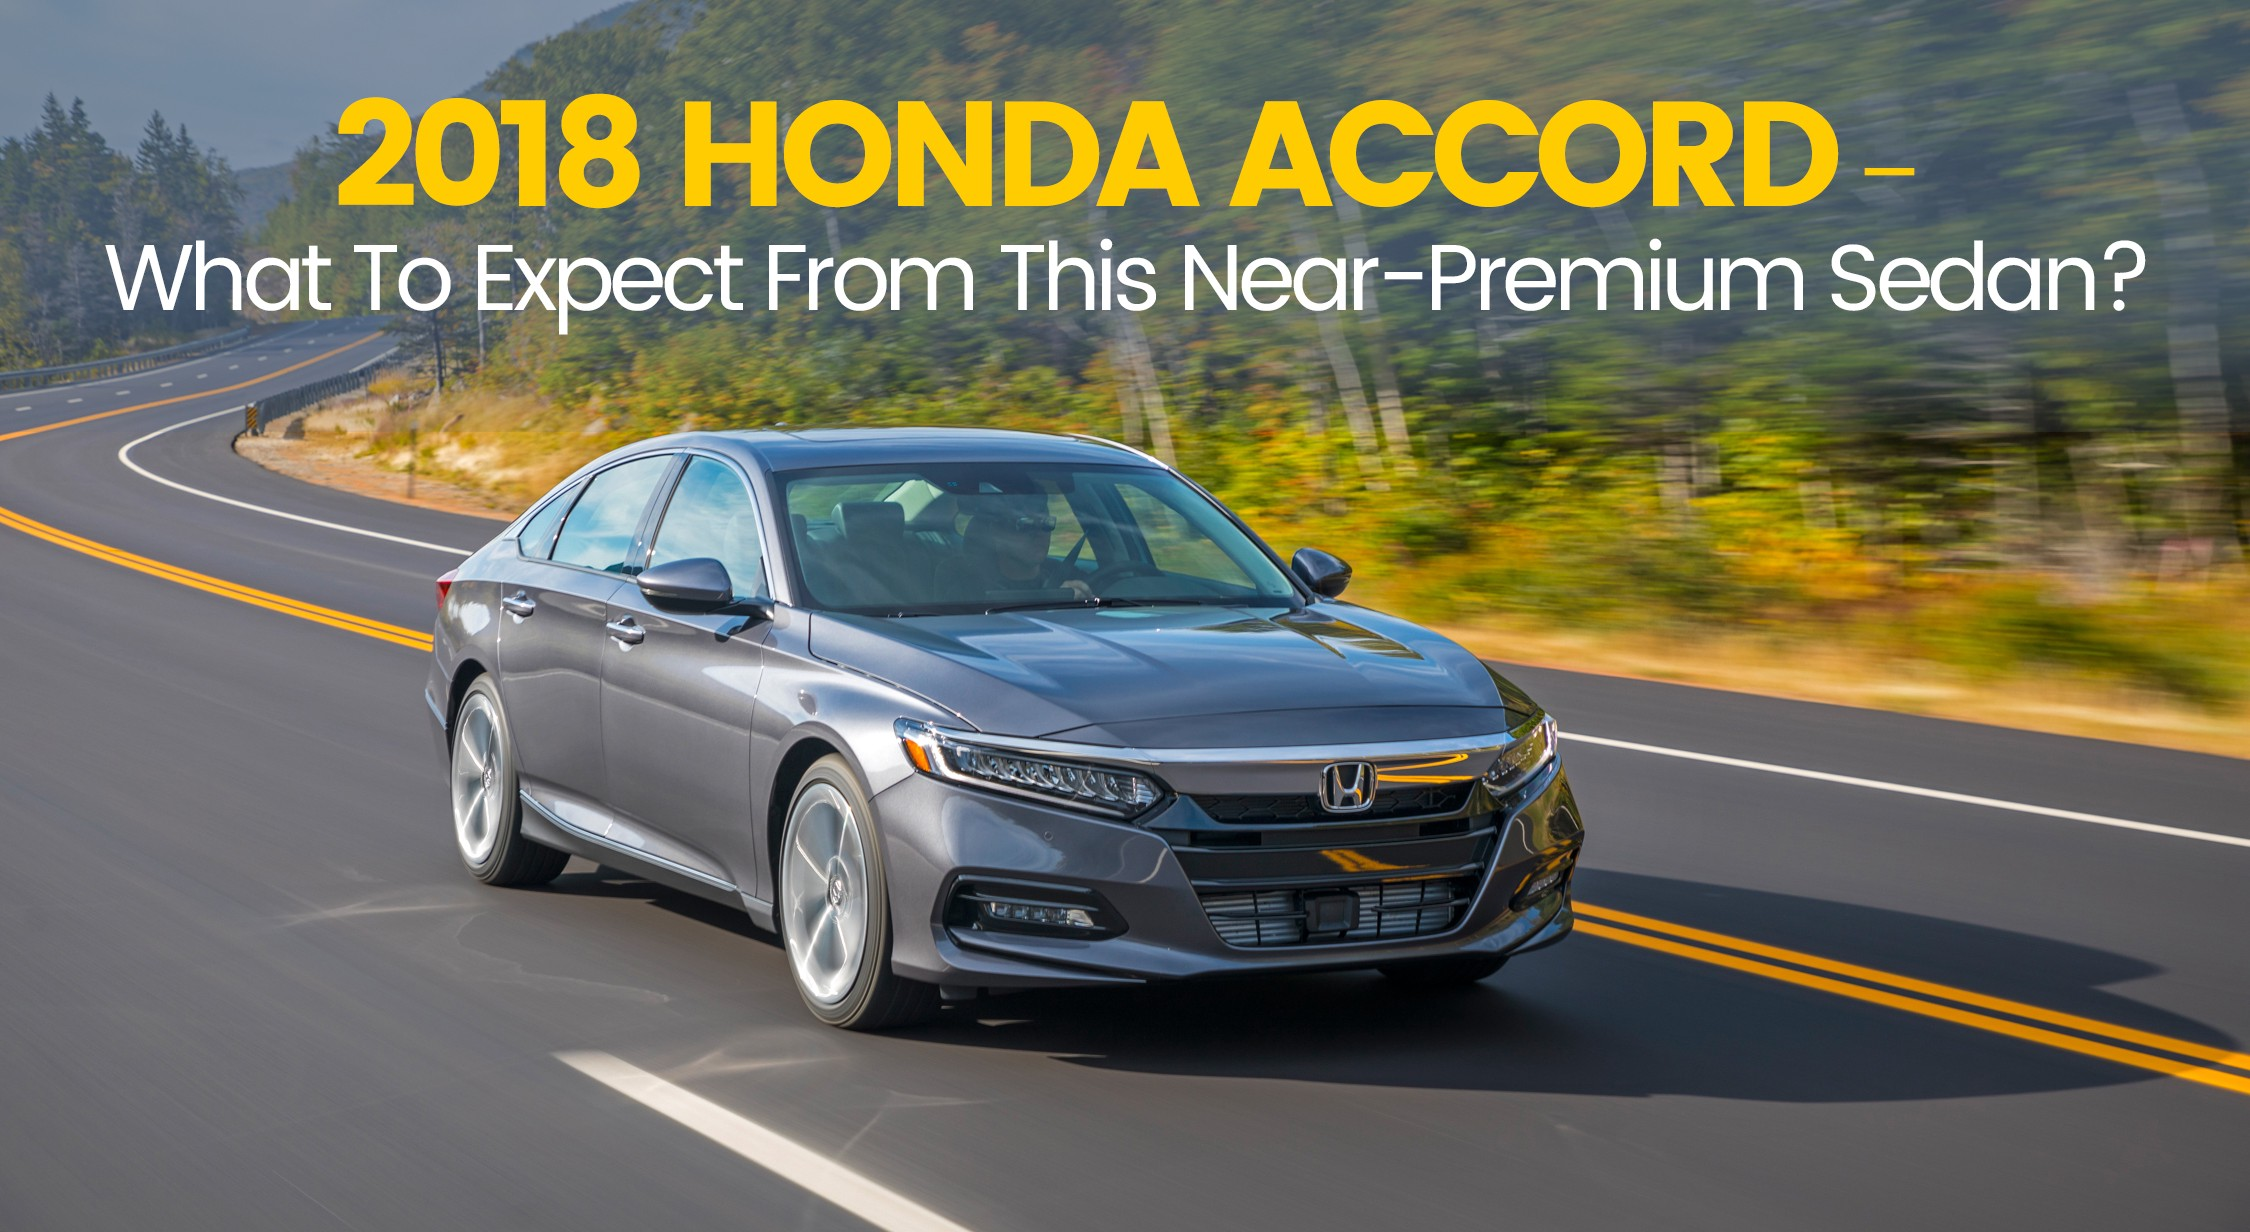 Sportier Looks Confidence Stance And Sleek Design With The 2018 Accord